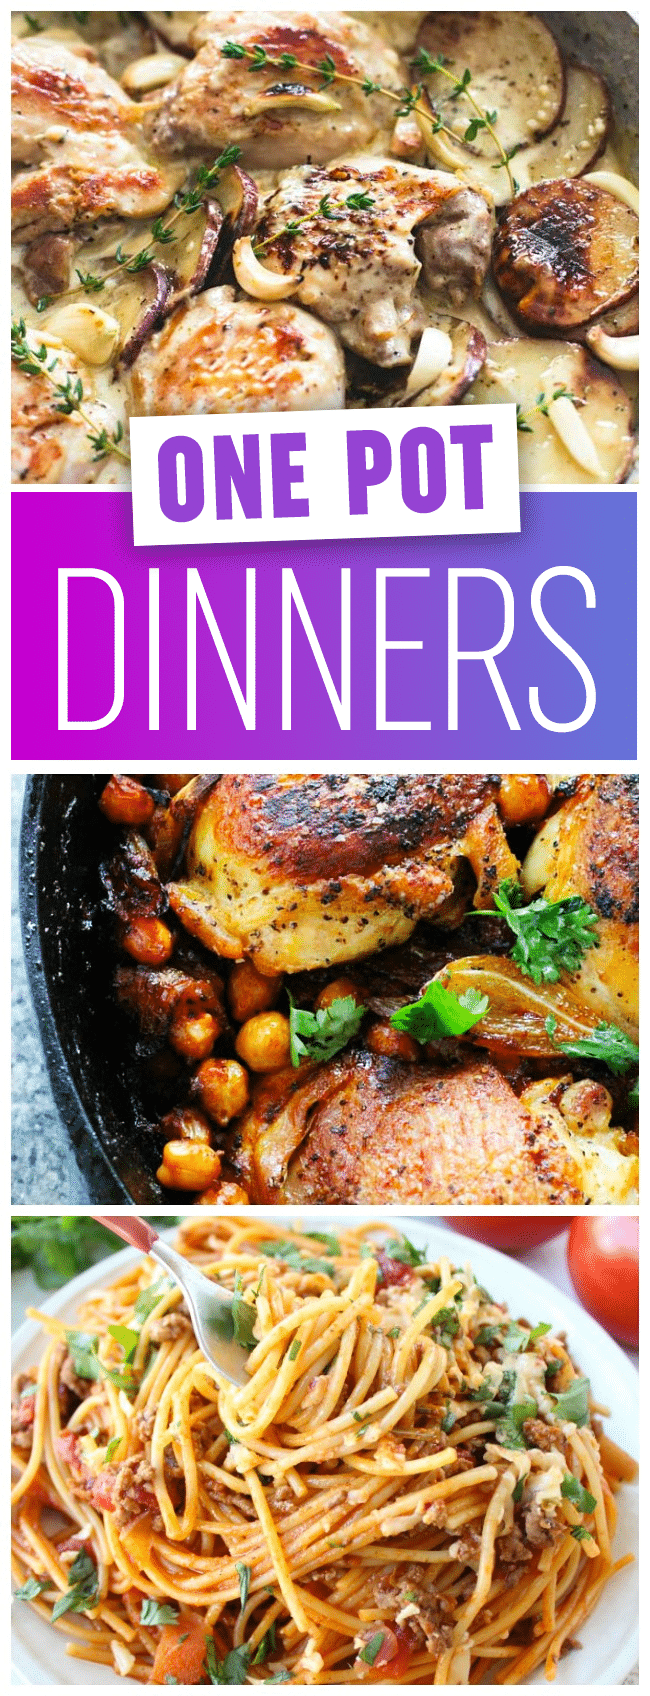 Best One Pot Dinner Recipes - Enjoy this roundup of the most delicious and easy one pan dinner recipes, all perfect for busy weeknights!